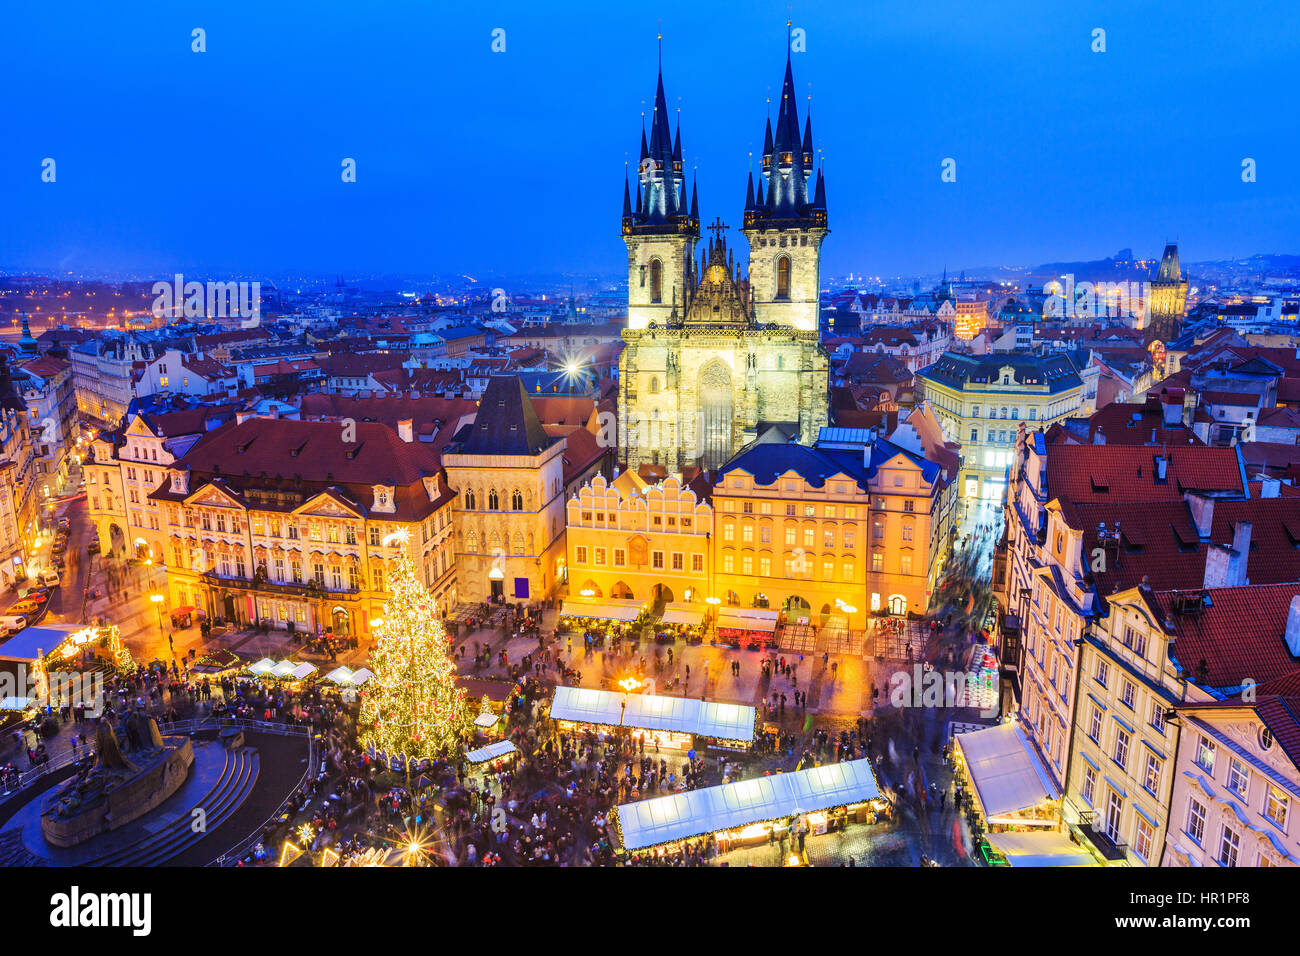 Prague, République tchèque. Repubilc Marché de Noël à la place de la vieille ville. Photo Stock